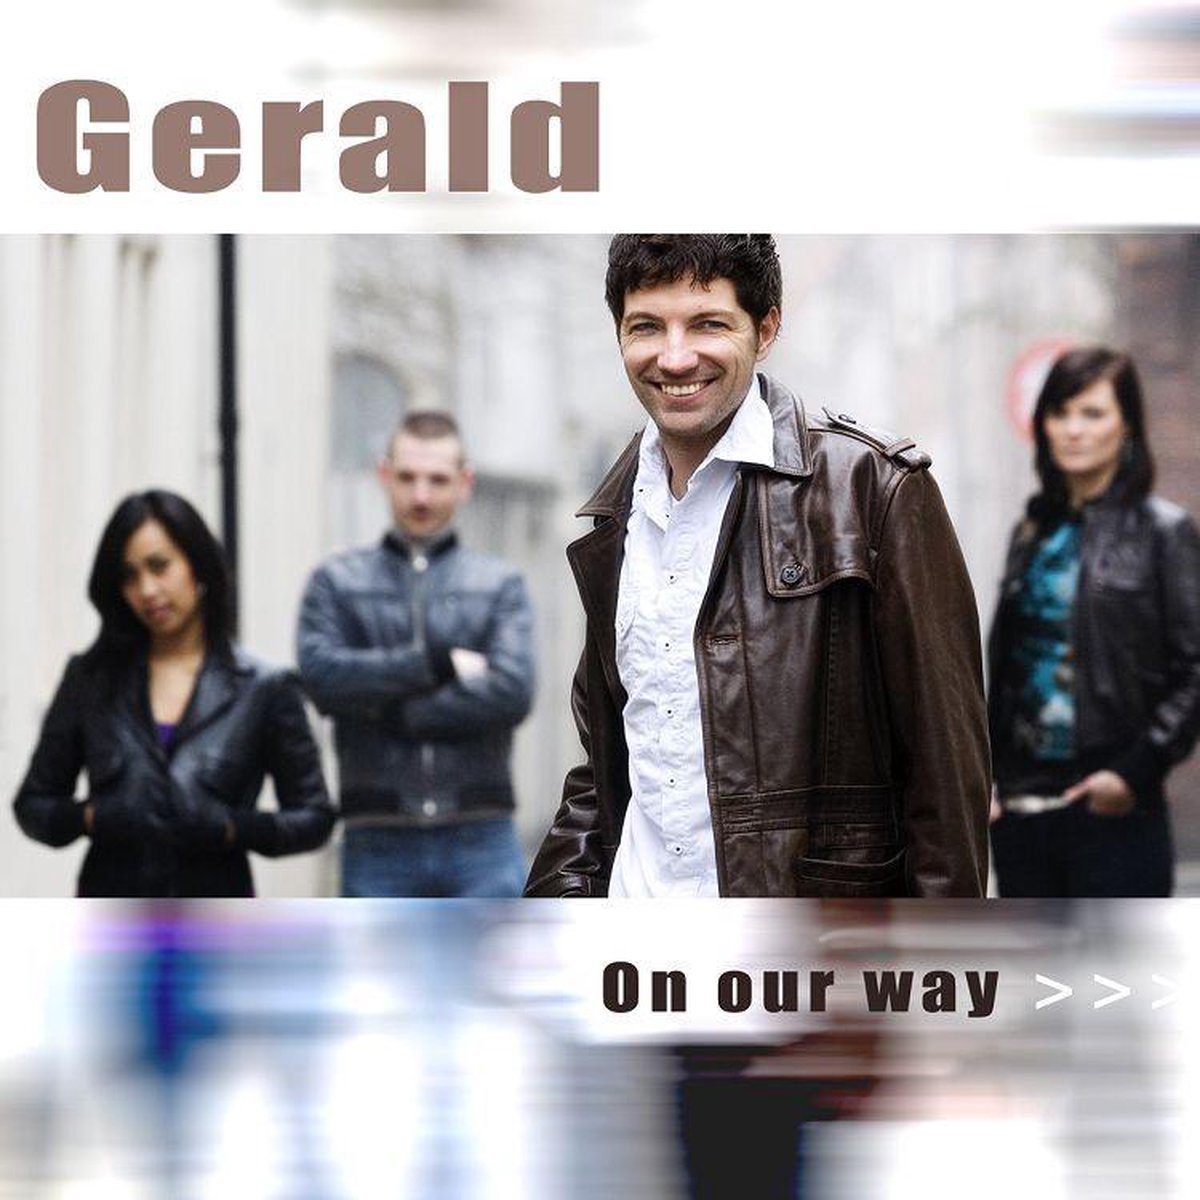 On Our Way - Troost, gerald